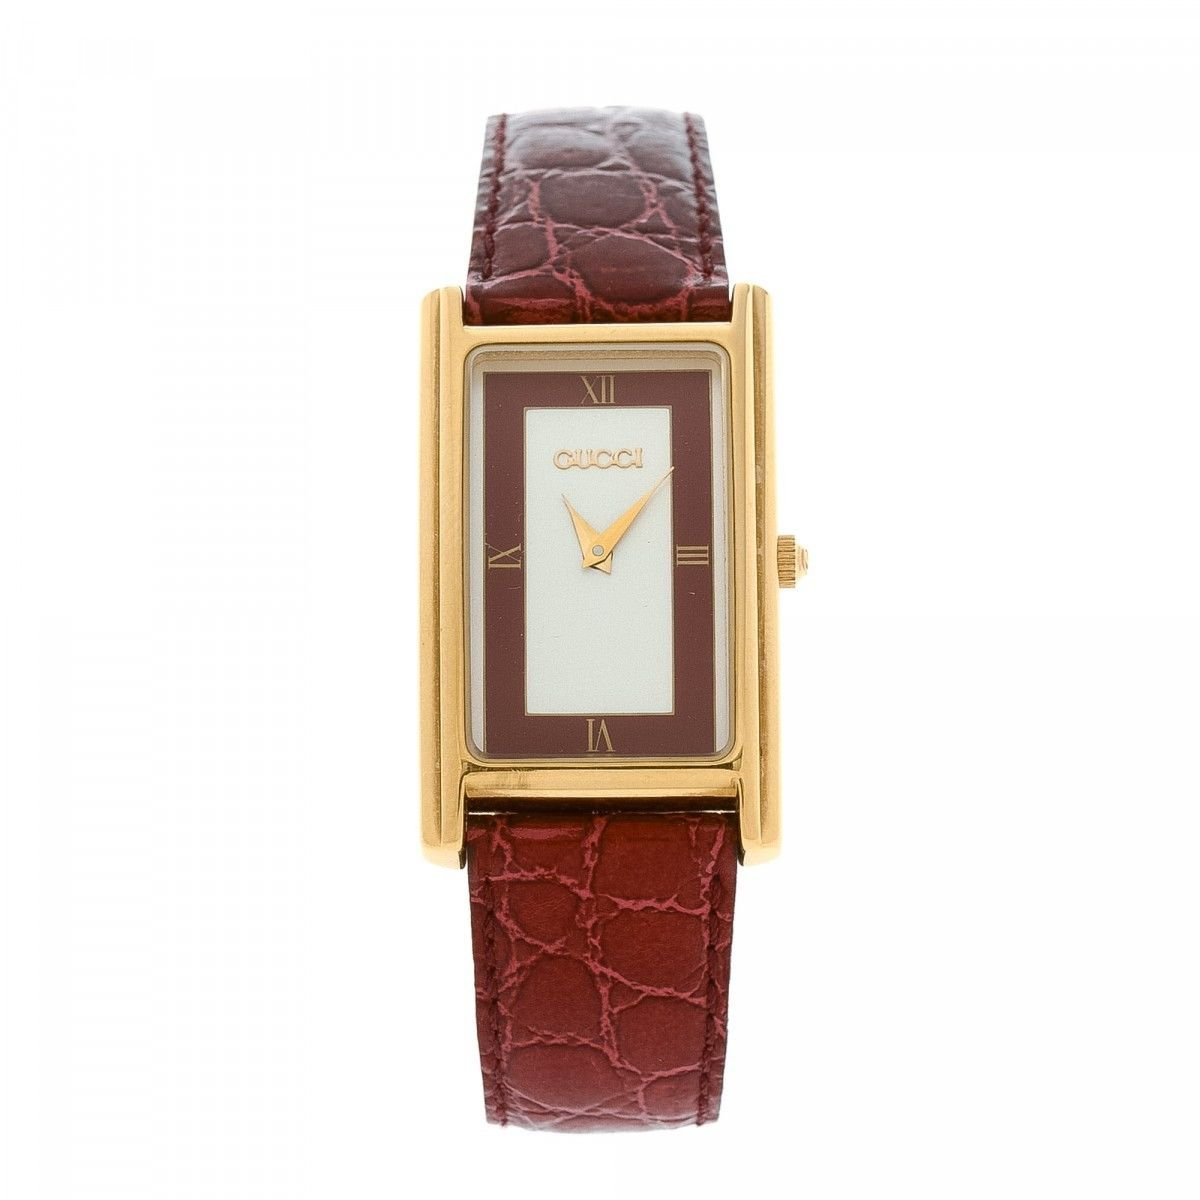 pink fff cartier allongee ranieru maroon satin mode goldsatin gold canada watches bgcolor ca women reebonz tank pad